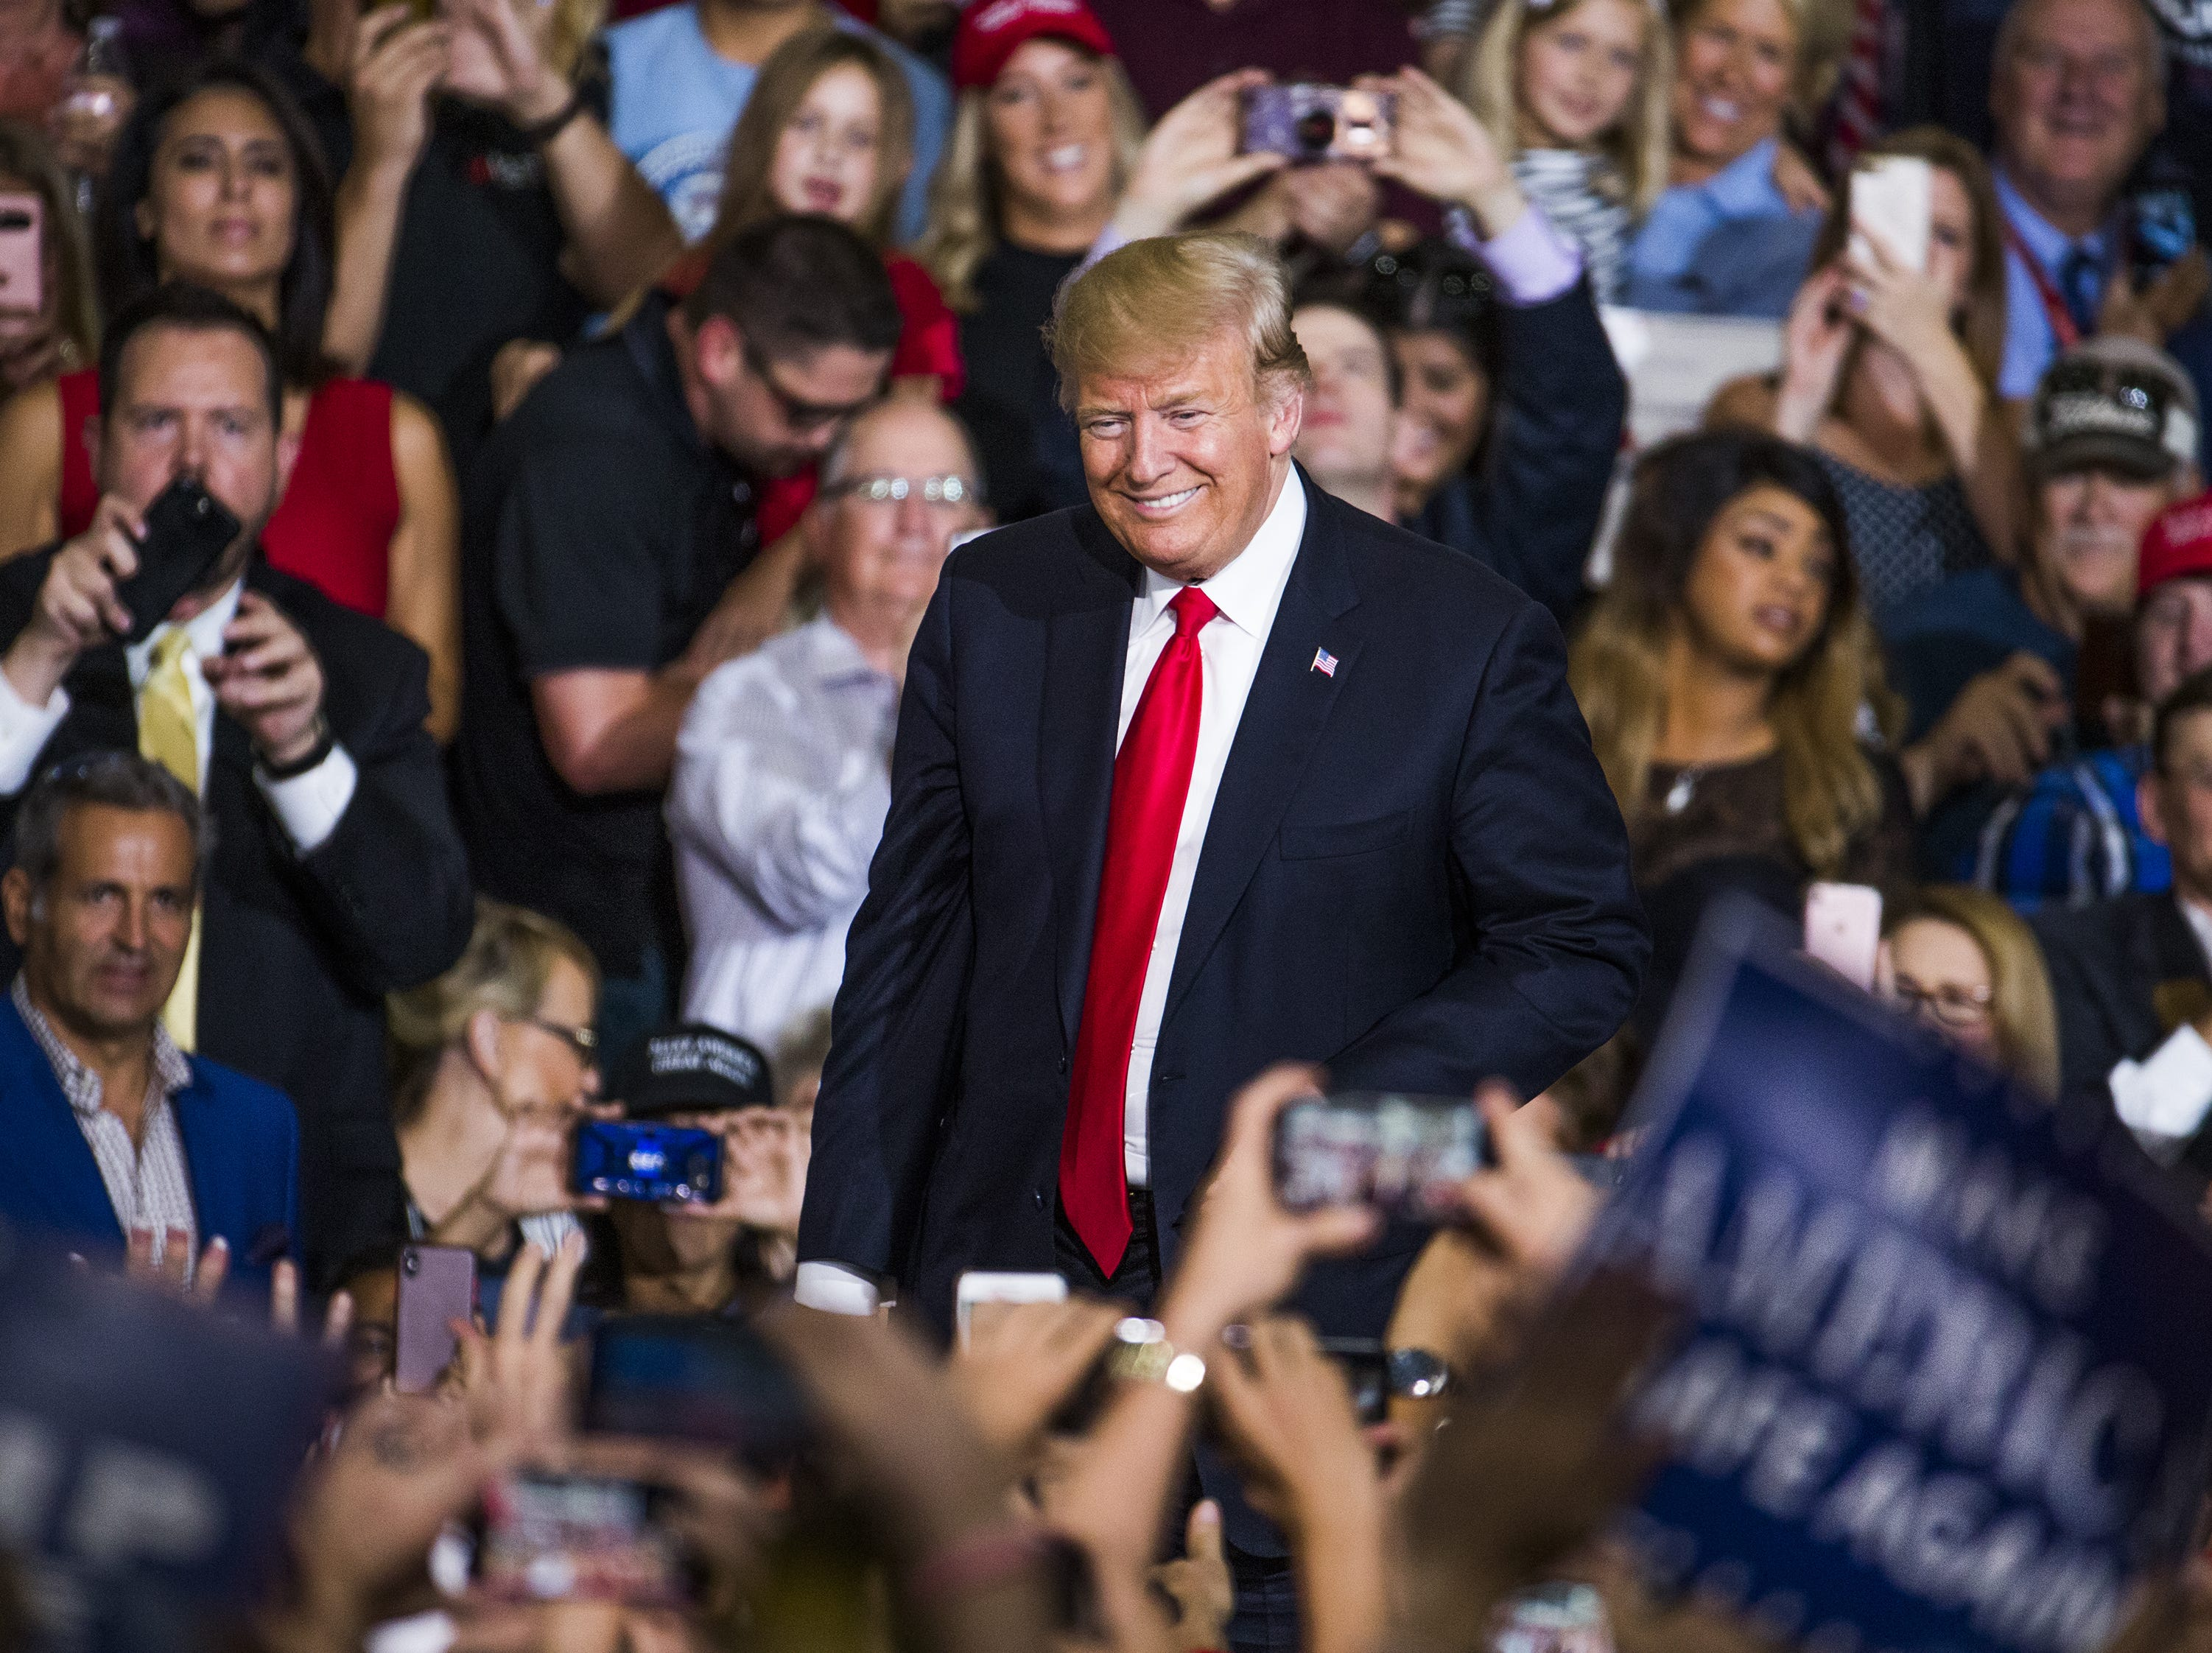 President Donald Trump enters the International Air Response Hangar at Phoenix-Mesa Gateway Airport for a rally for Rep. Martha McSally on Oct. 19, 2018.